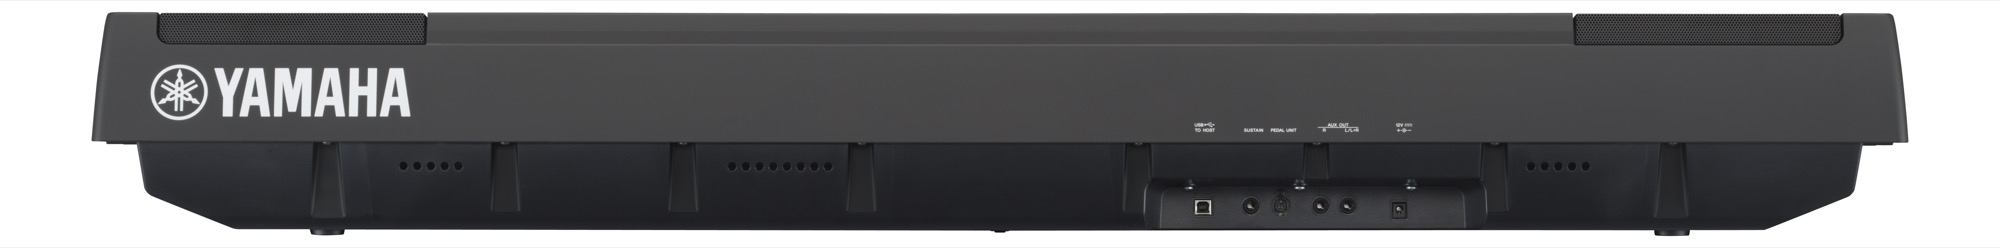 Connectivity Features of Yamaha P125